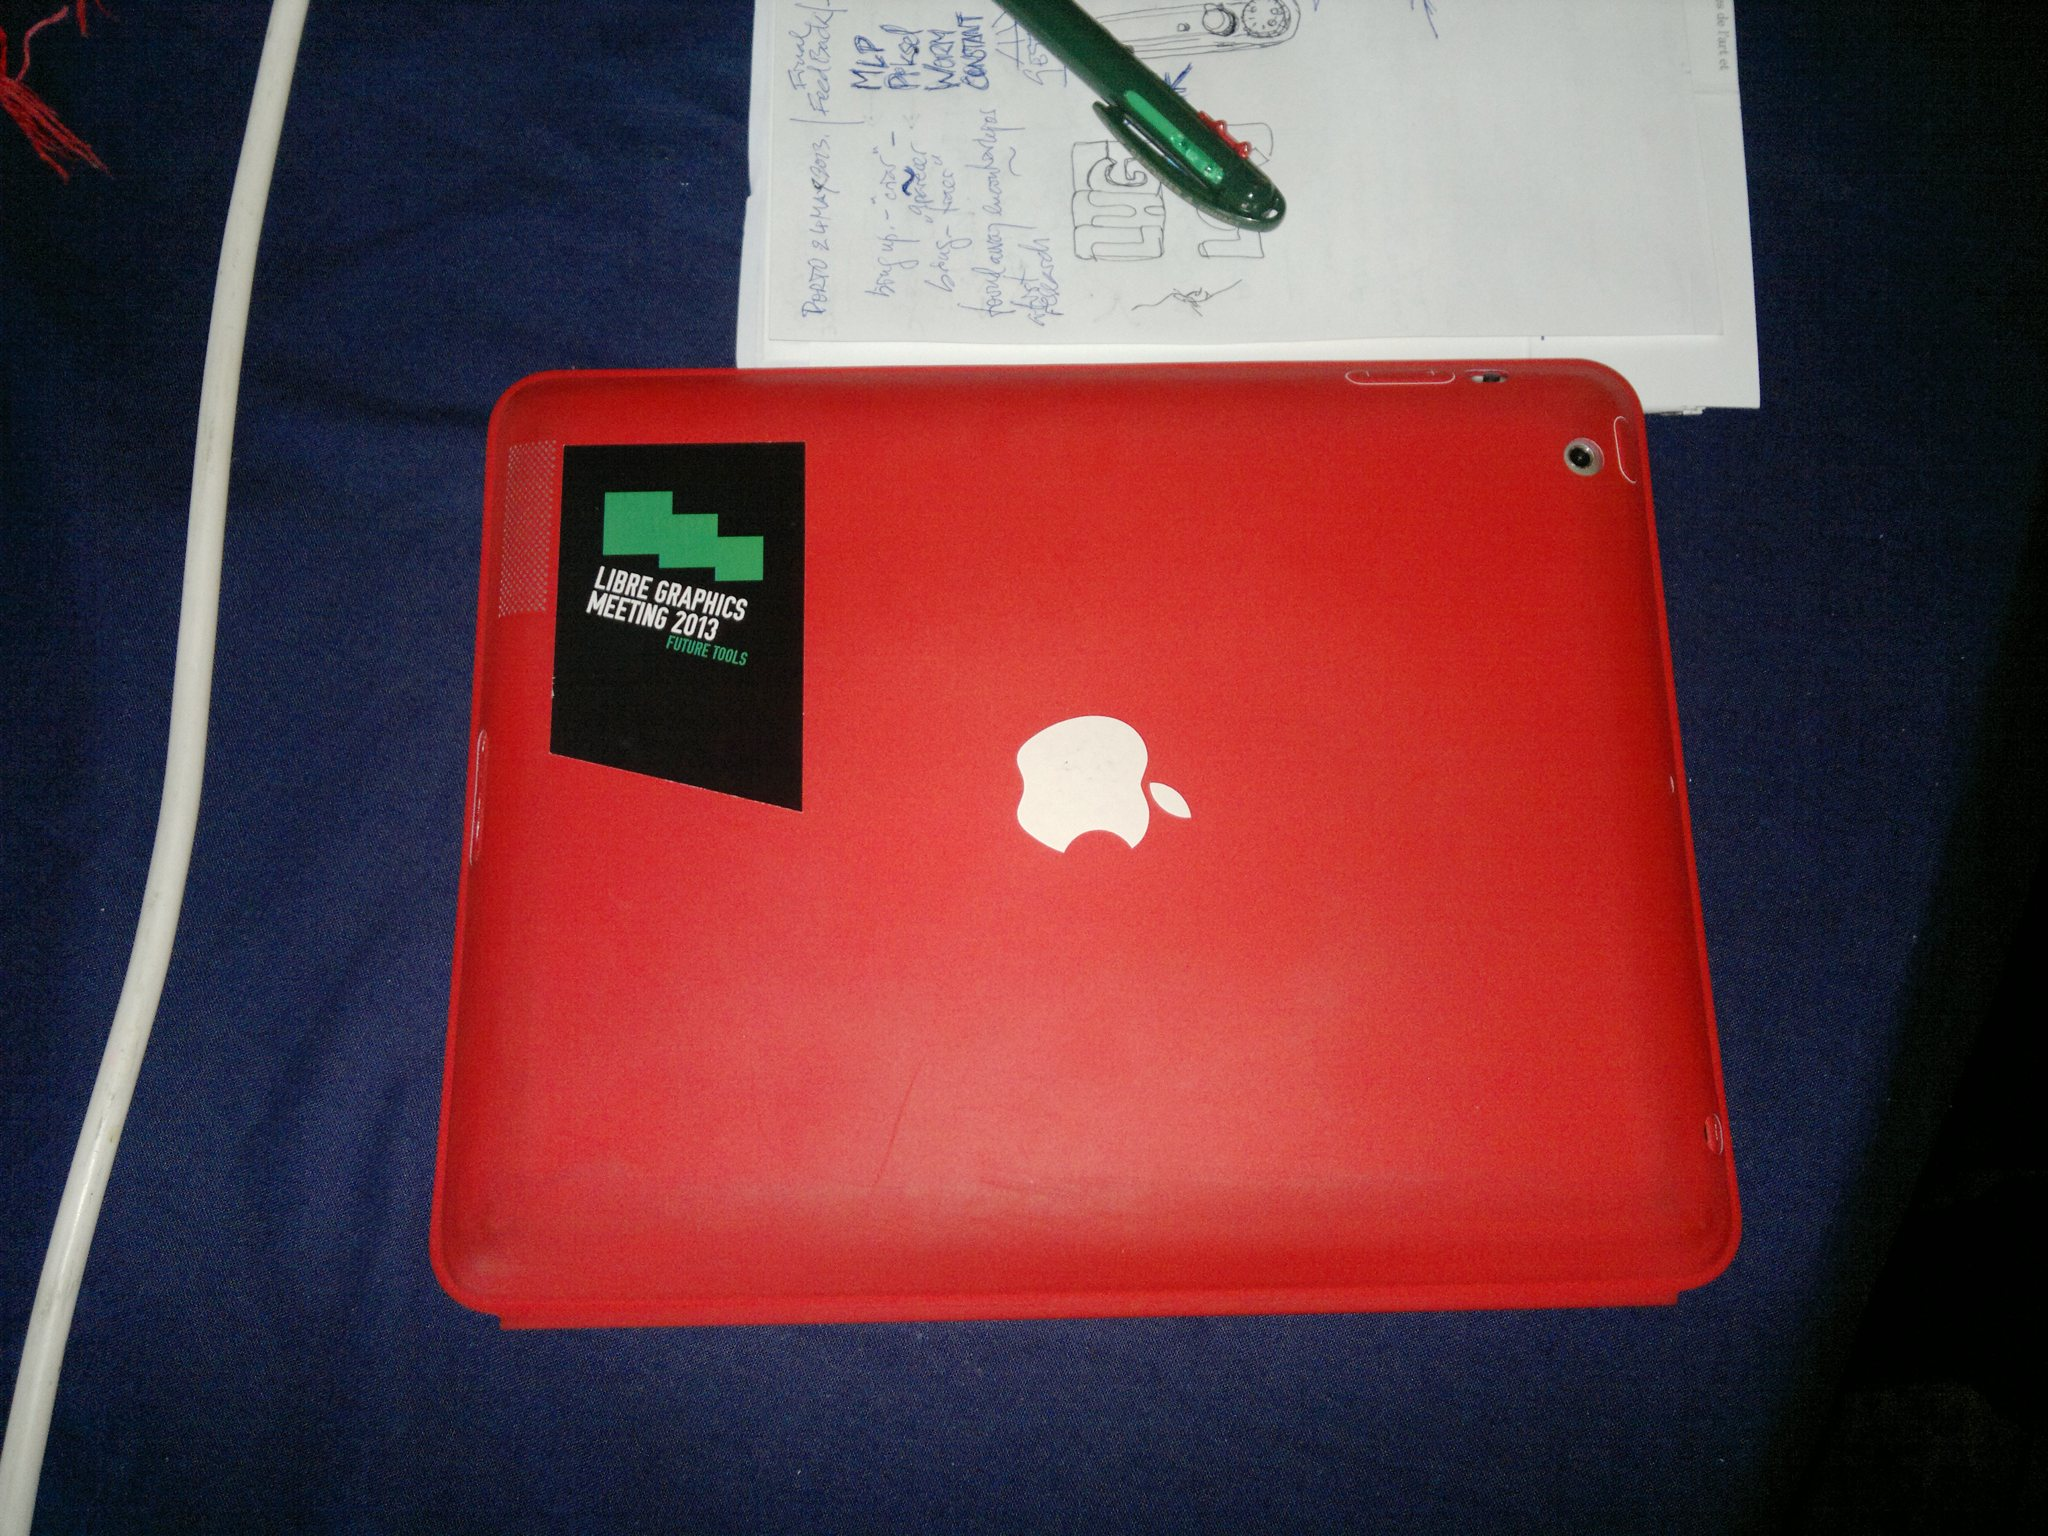 Luis: Apple iPad